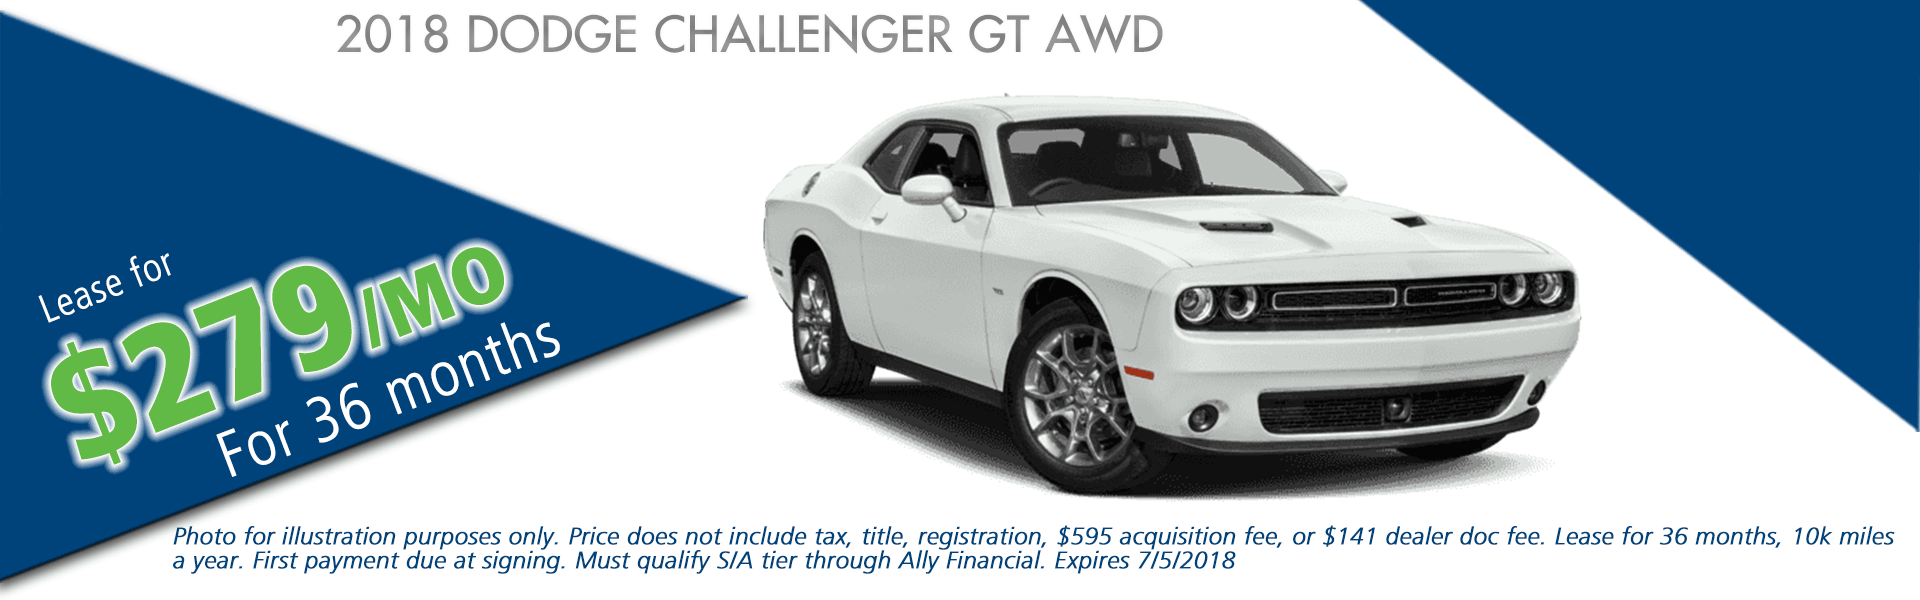 NEW 2018 DODGE CHALLENGER GT ALL-WHEEL DRIVE carright chrysler jeep dodge ram moon township pennsylvania pittsburgh